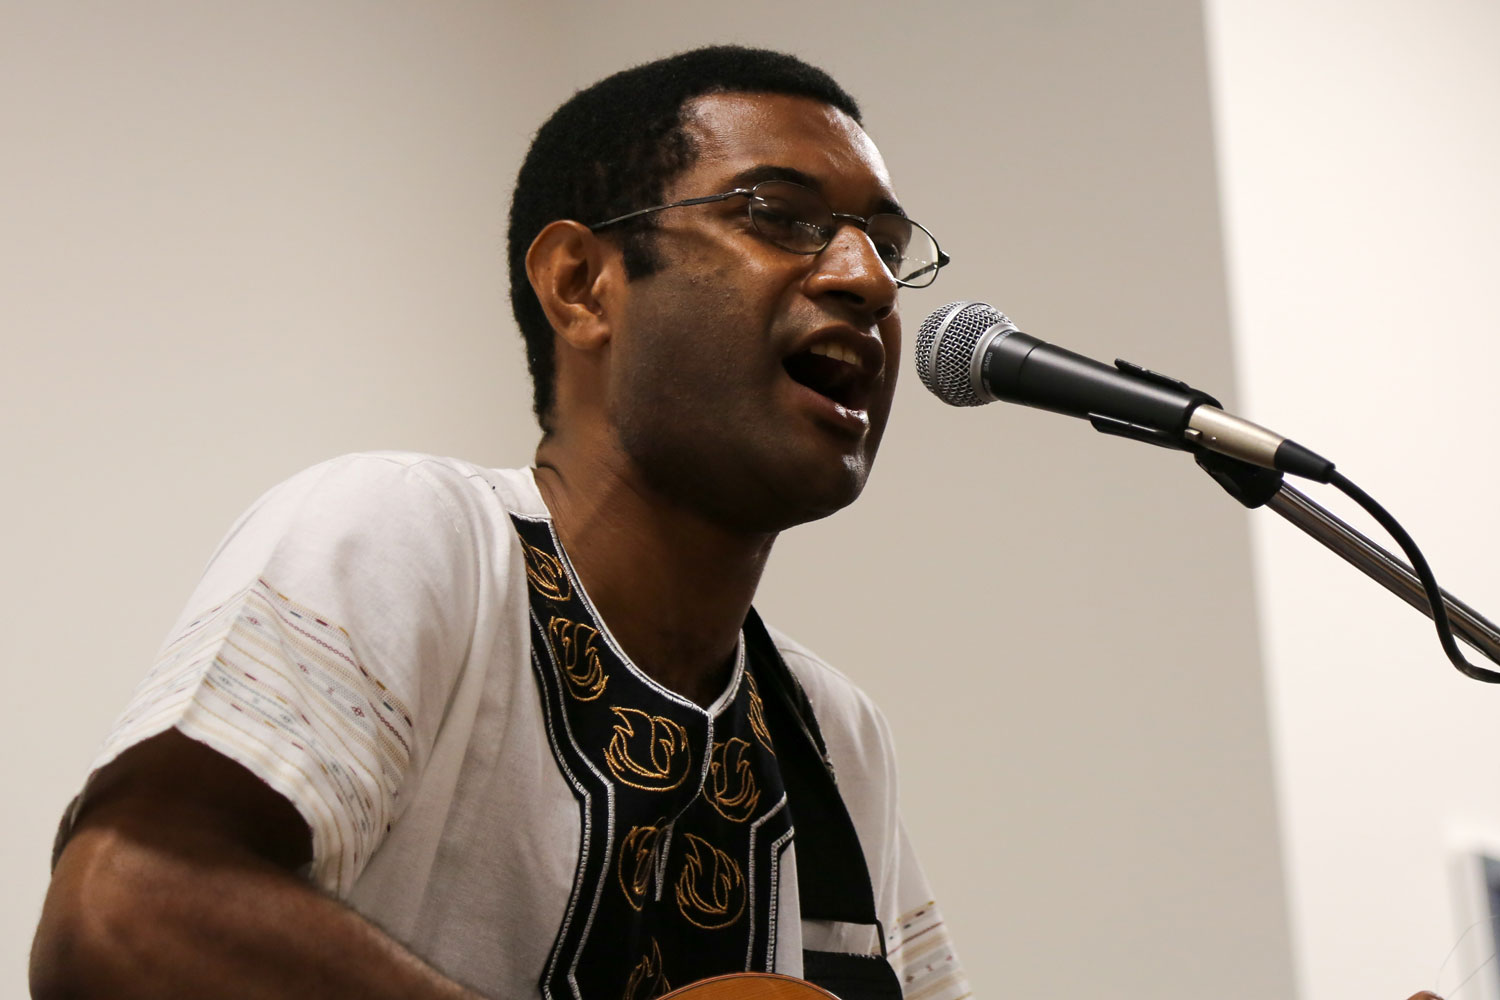 A man sings into a microphone while playing the guitar